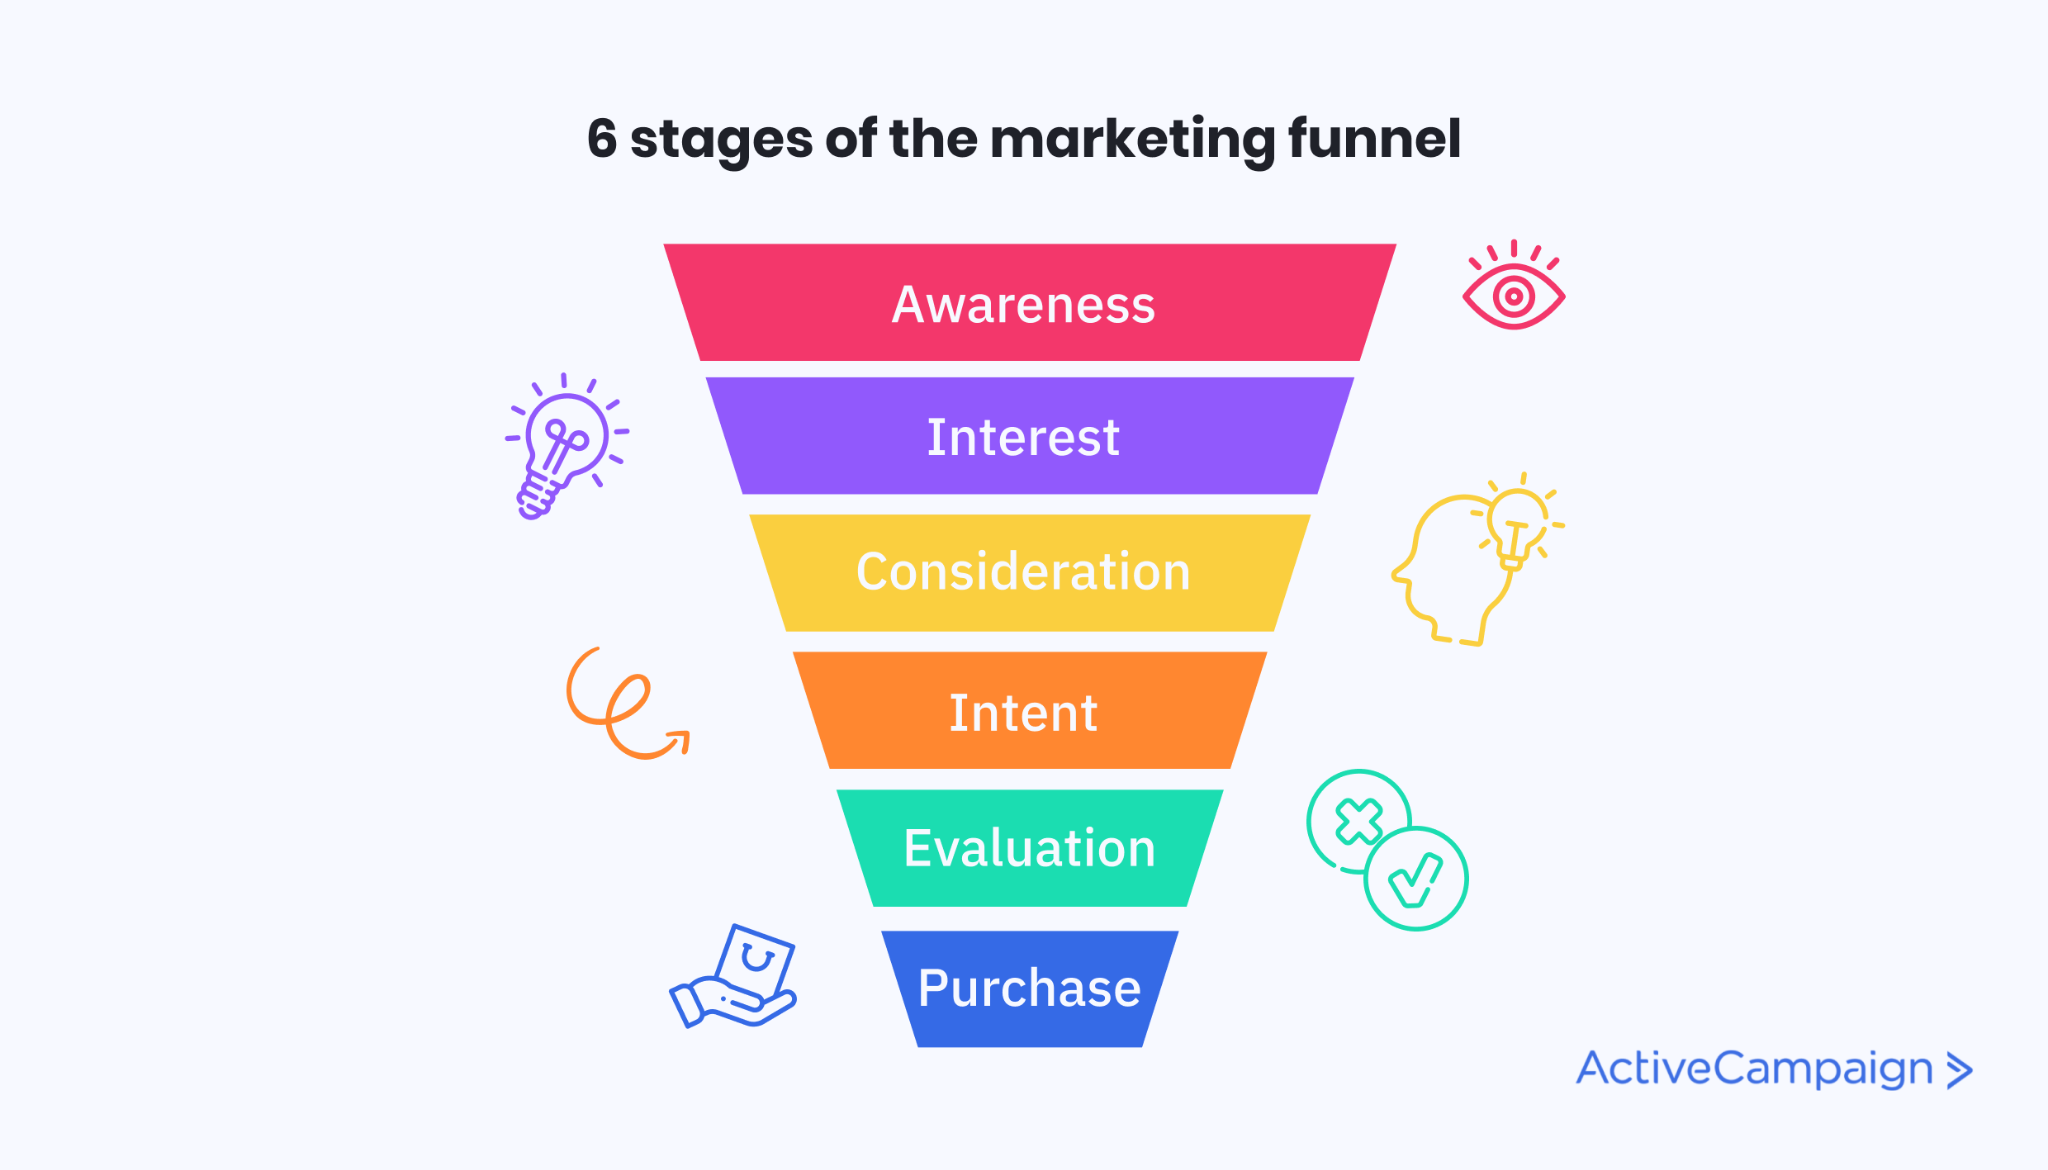 Image of the 6 stages of the marketing funnel, including a description of each